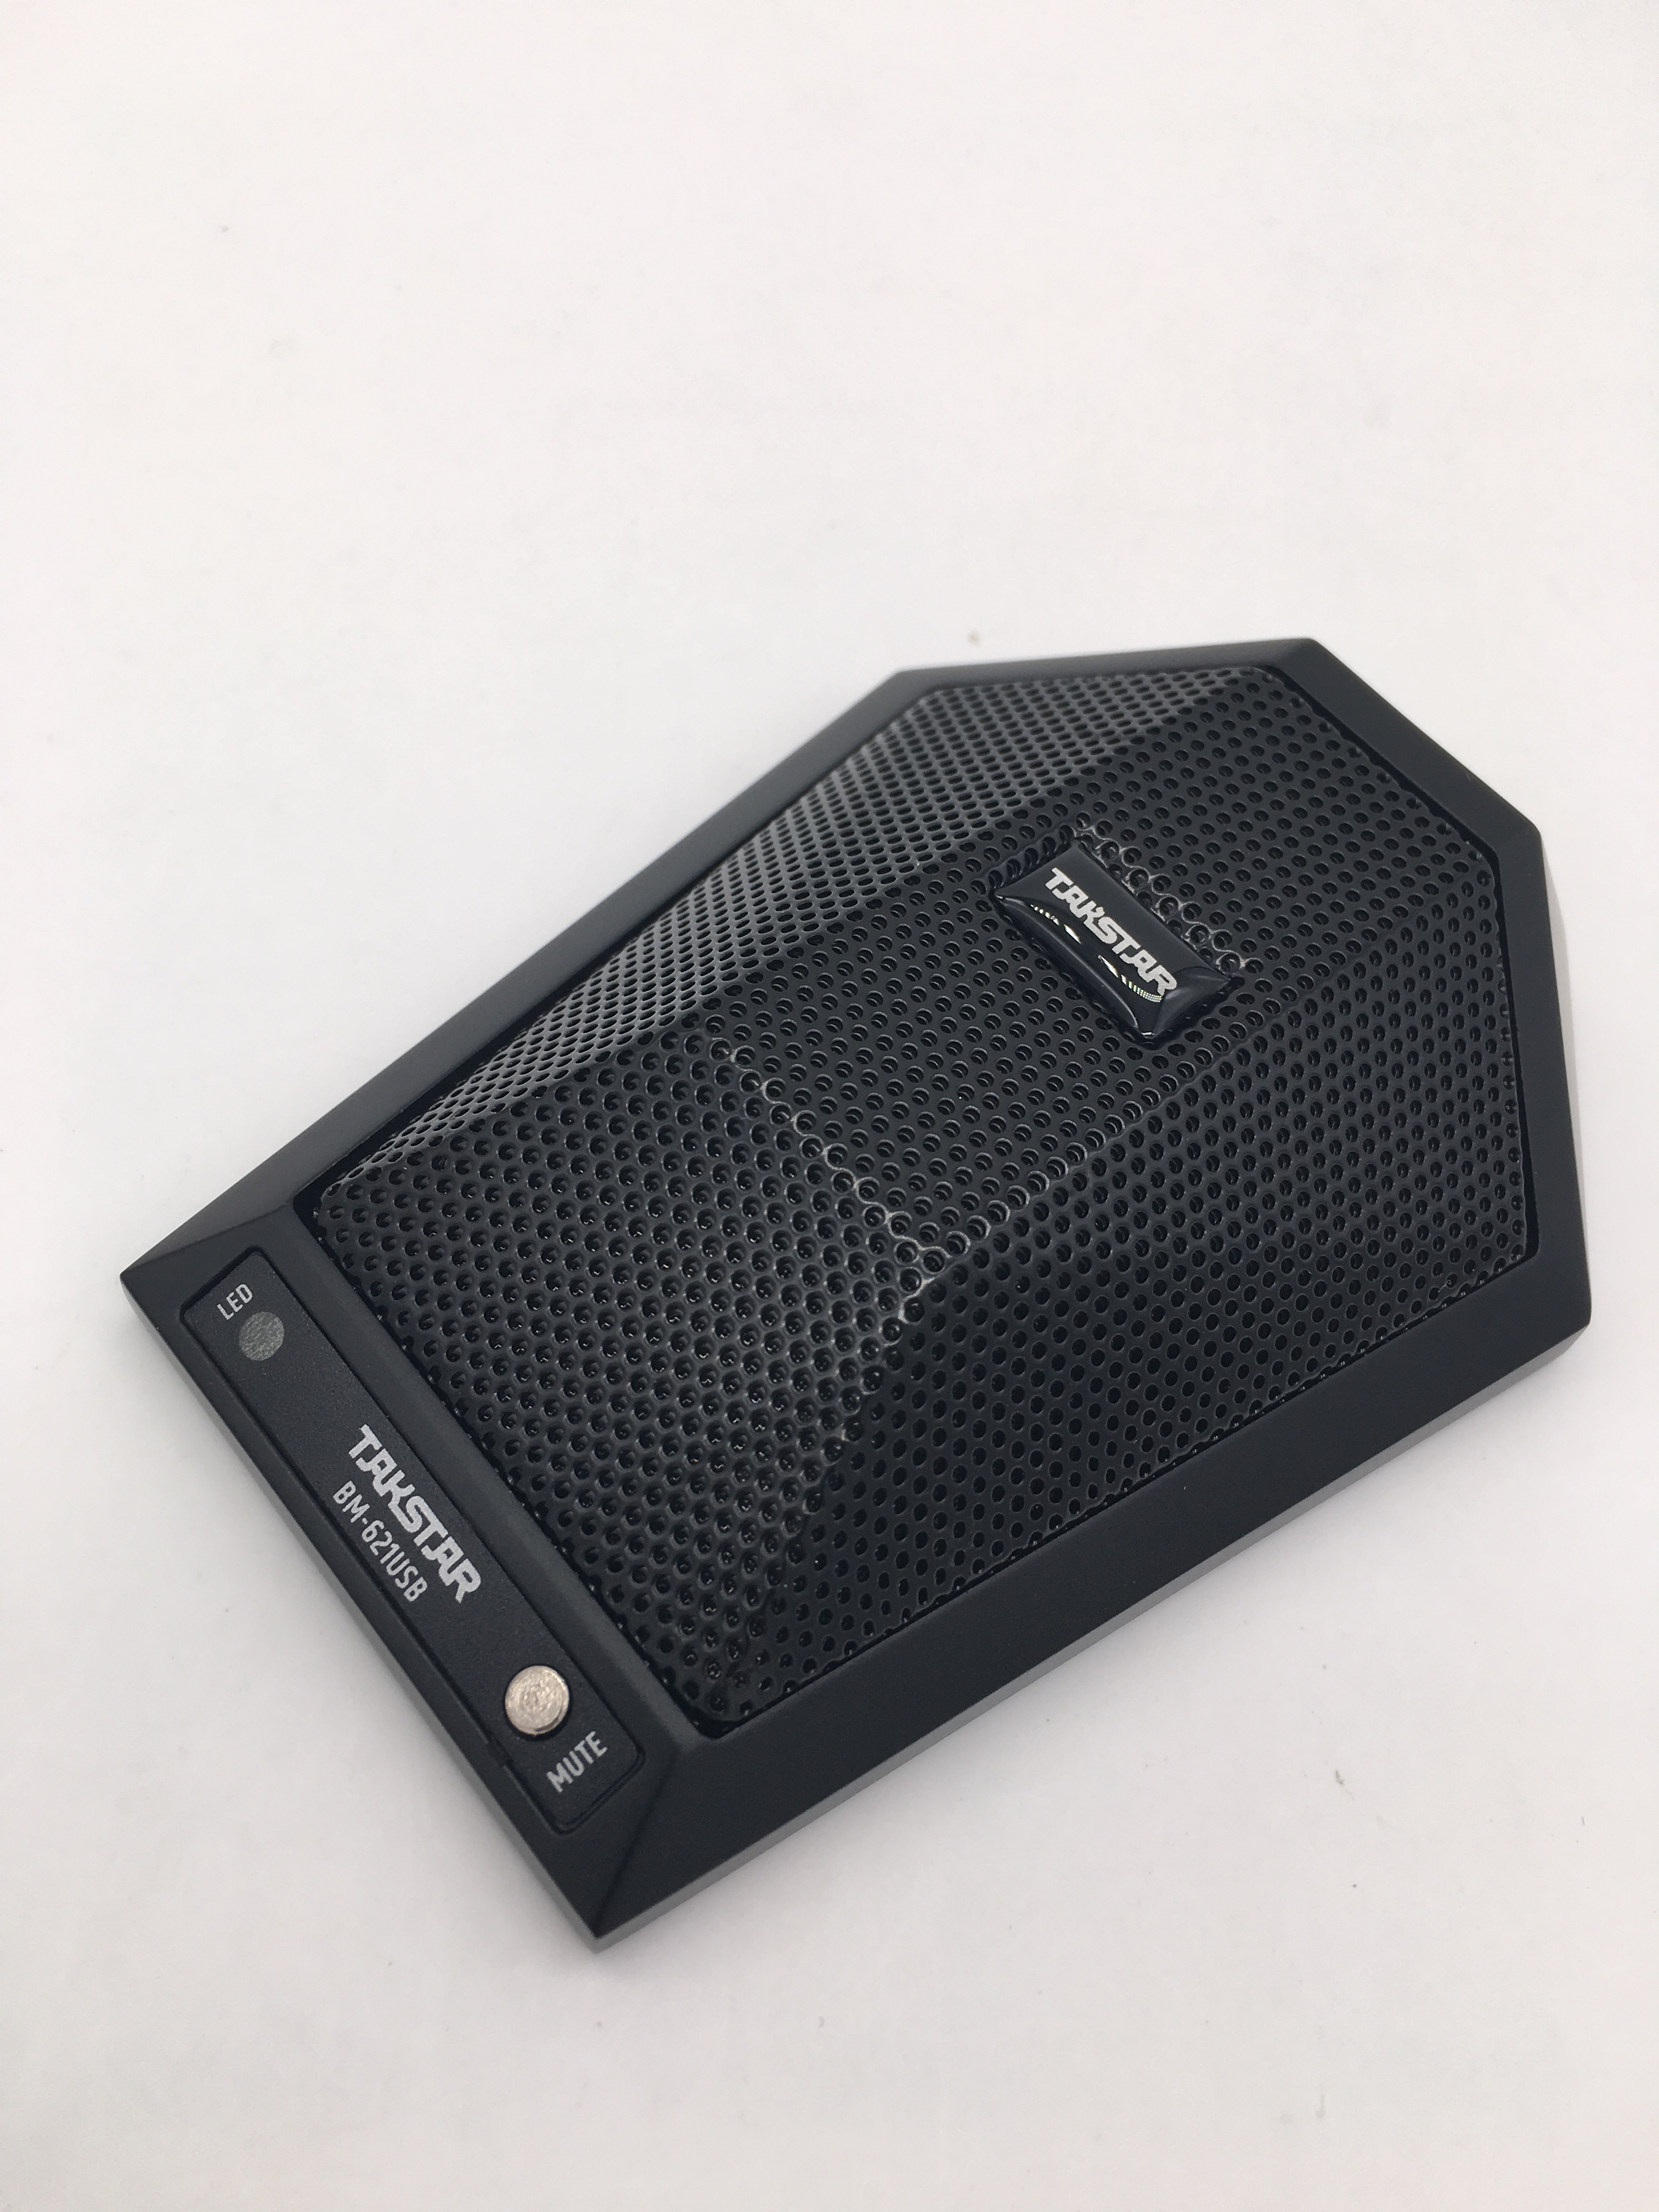 Takstar BM-621USB USB Boundary recording Microphone for Network live broadcast/conference/vocal chat,plug and play portable mic